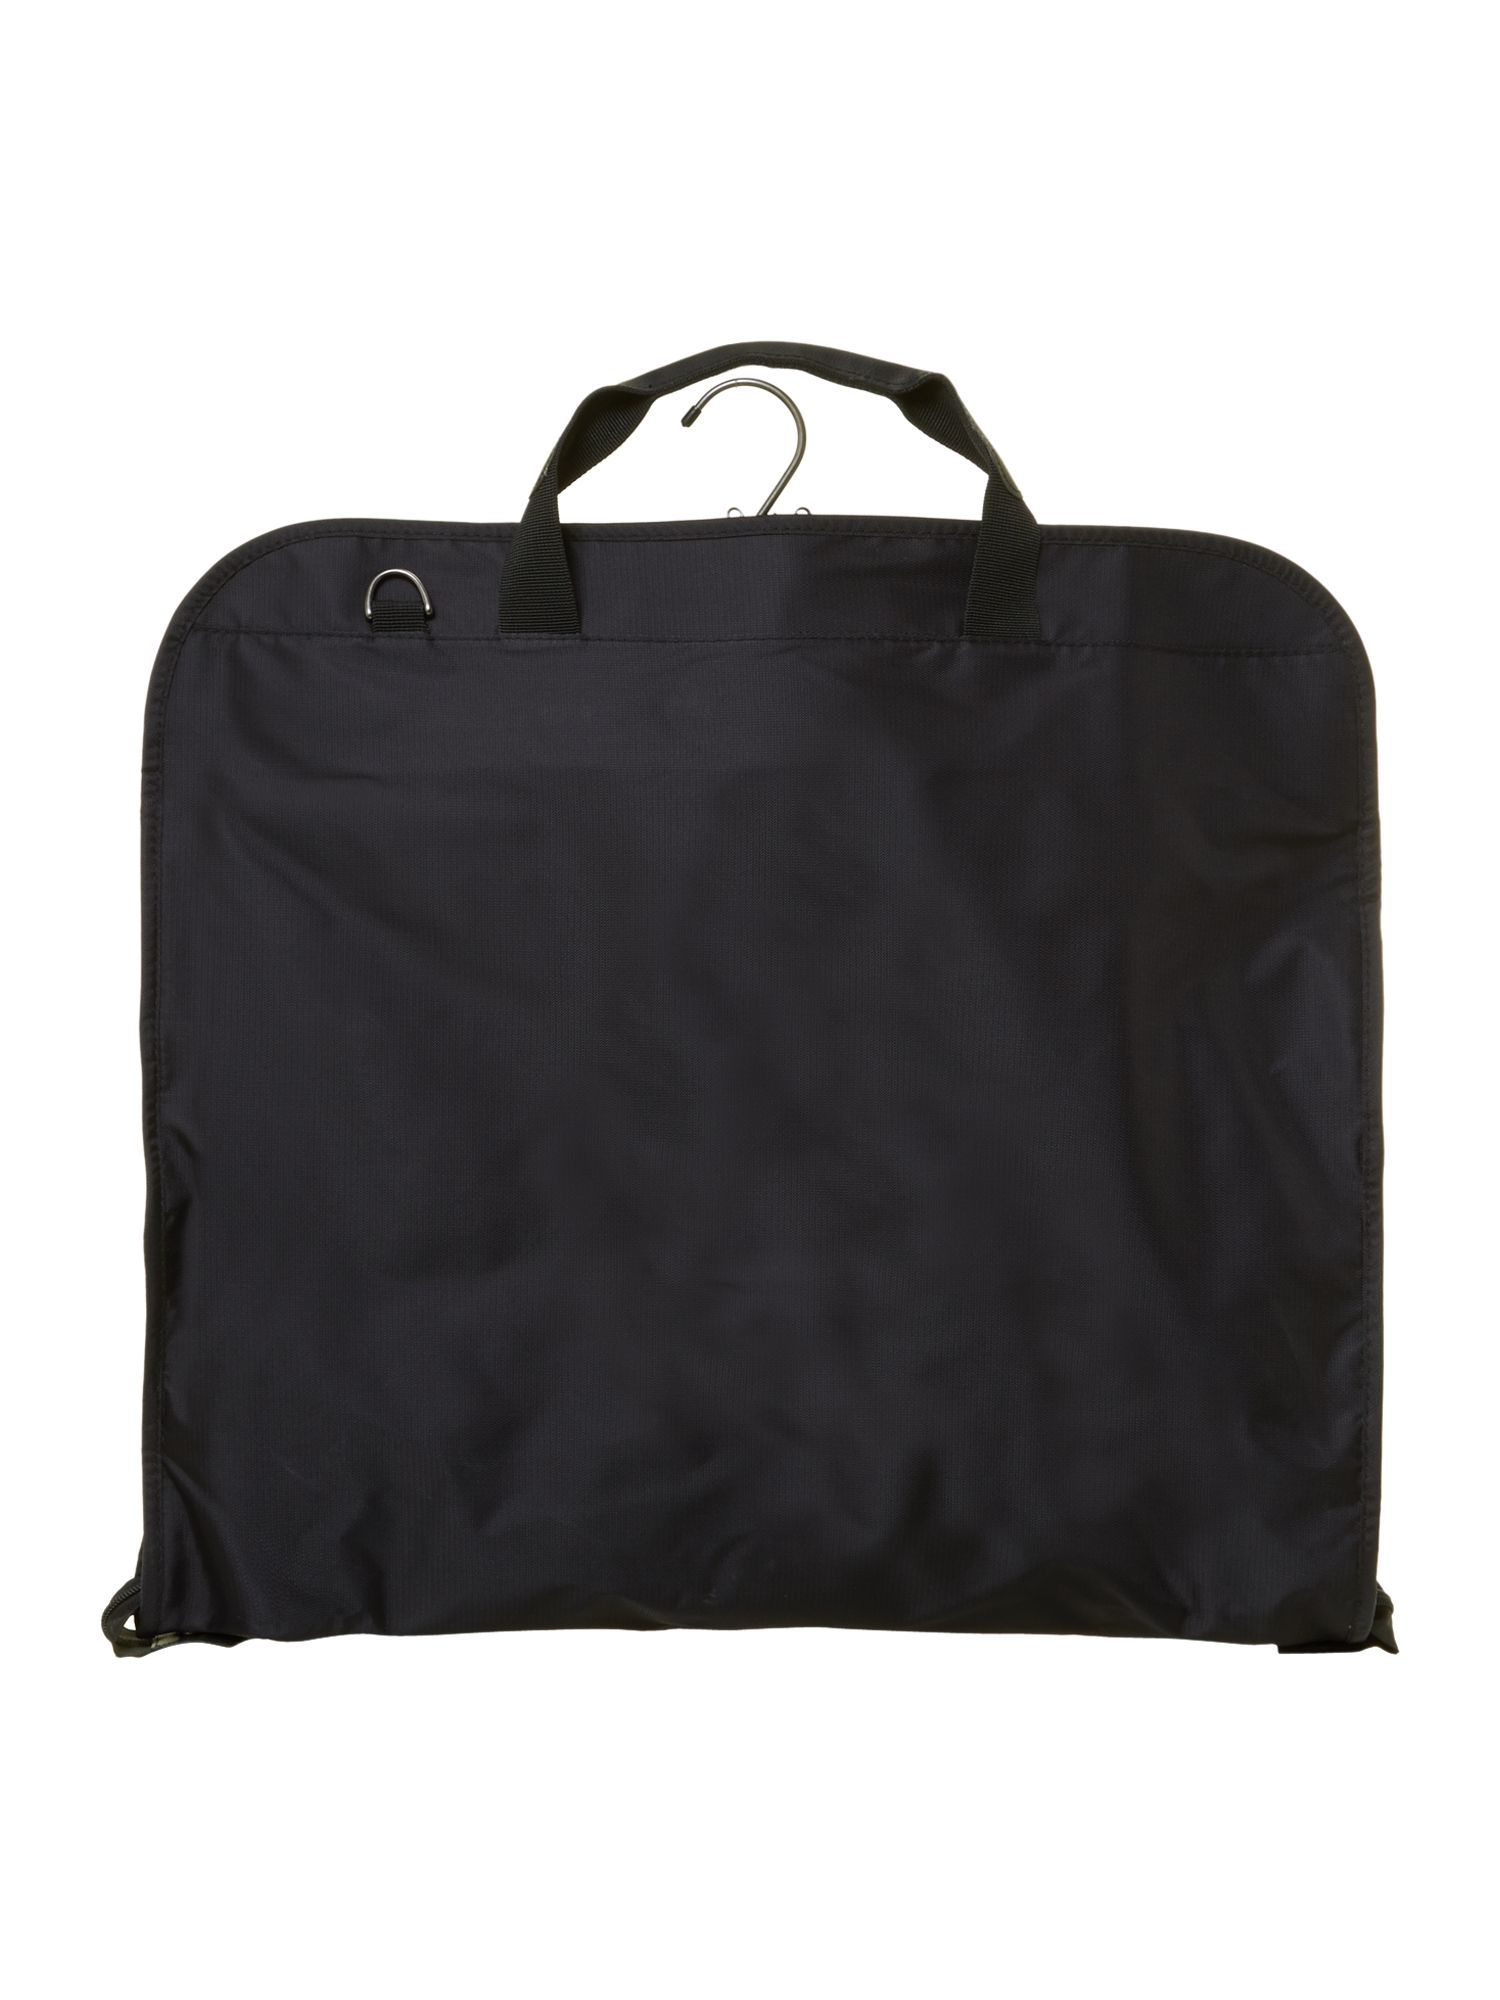 Linea executive garment carrier